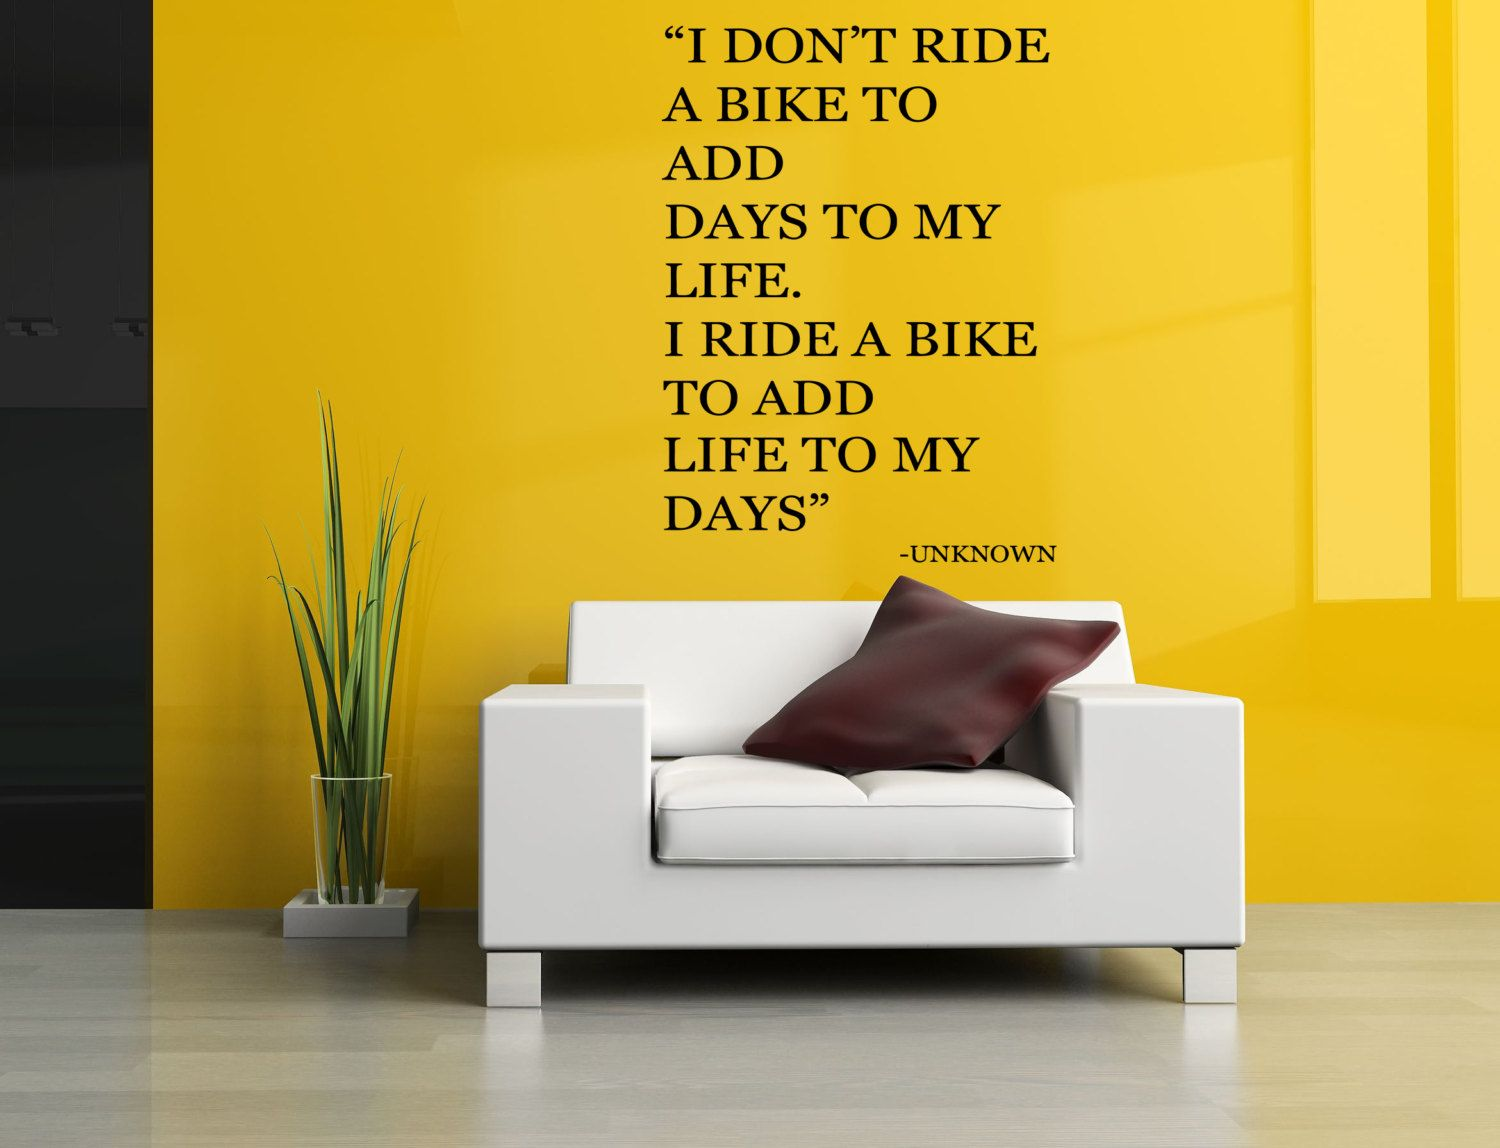 Removable Vinyl Sticker Mural Decal Wall Decor Poster Art Quote ...